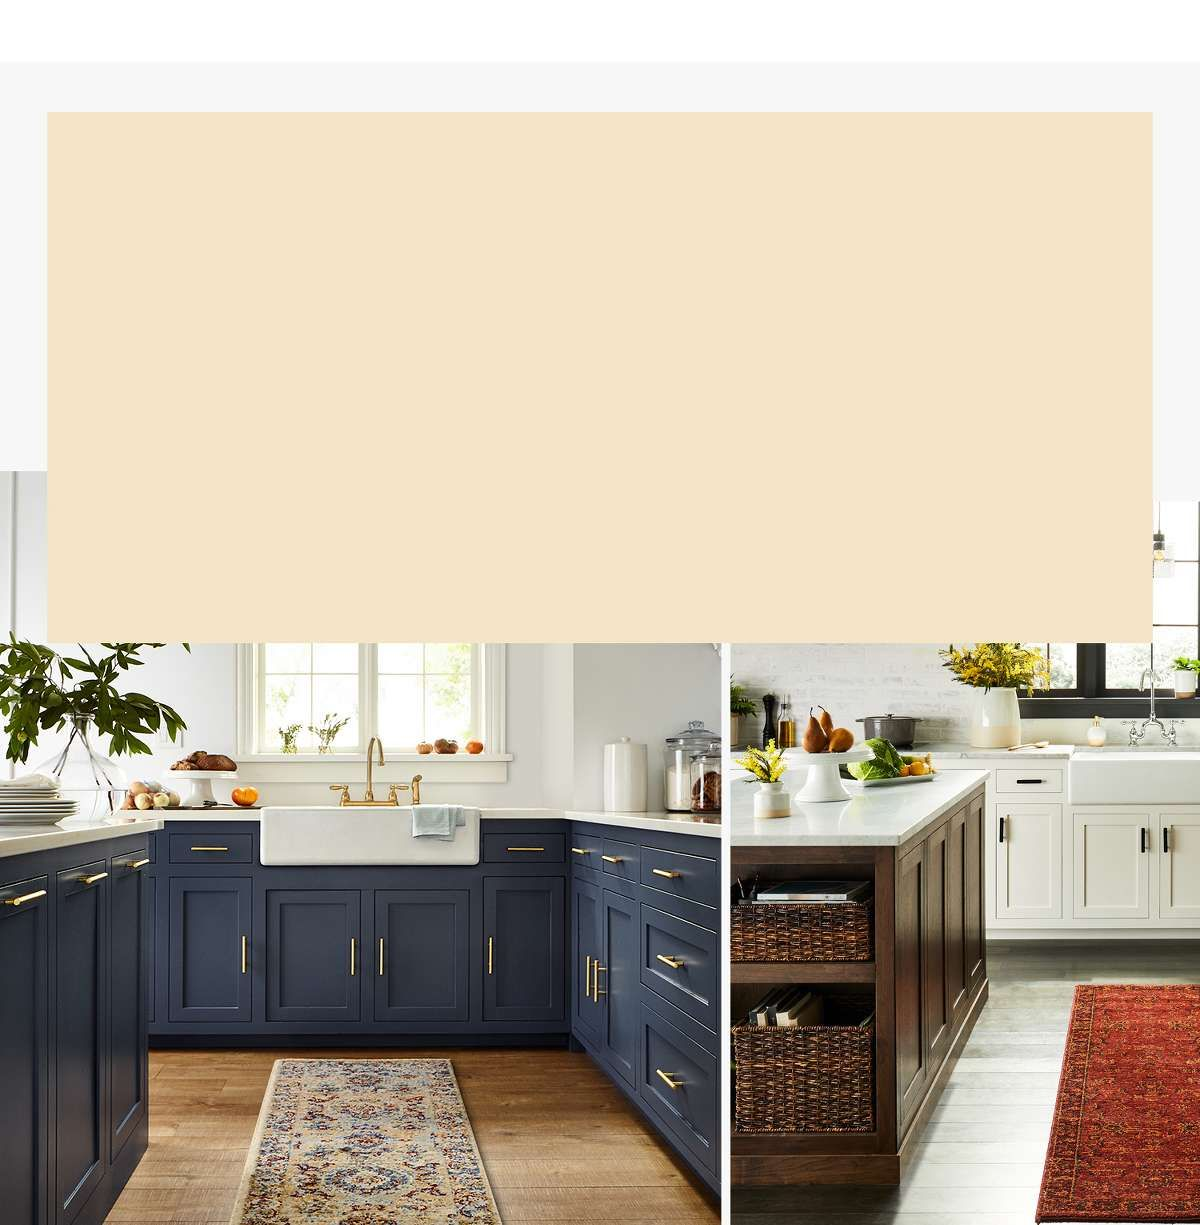 Shop Target For Home Renovation You Will Love At Great Low Prices Choose From Contactless Same Da In 2021 Diy Kitchen Renovation Lake House Kitchen Kitchen Renovation